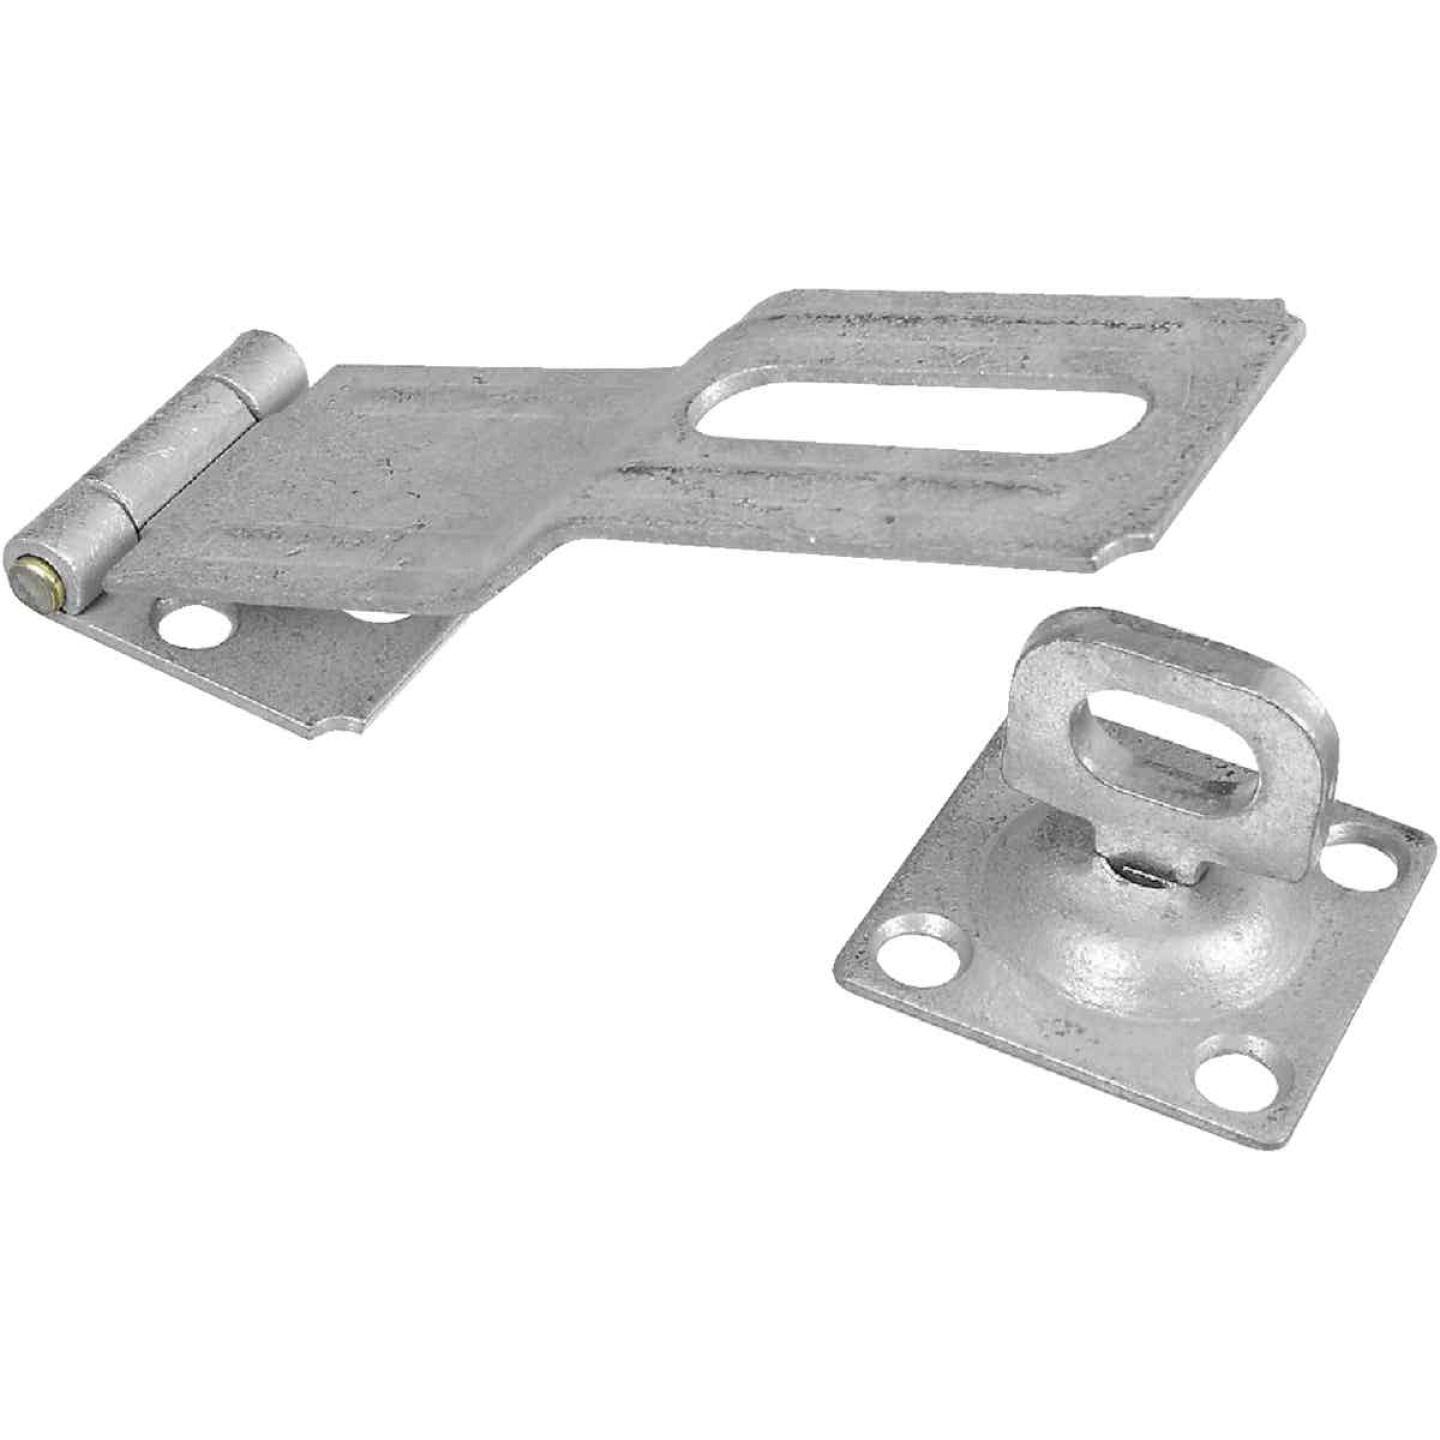 National 4-1/2 In. Galvanized Swivel Safety Hasp Image 1